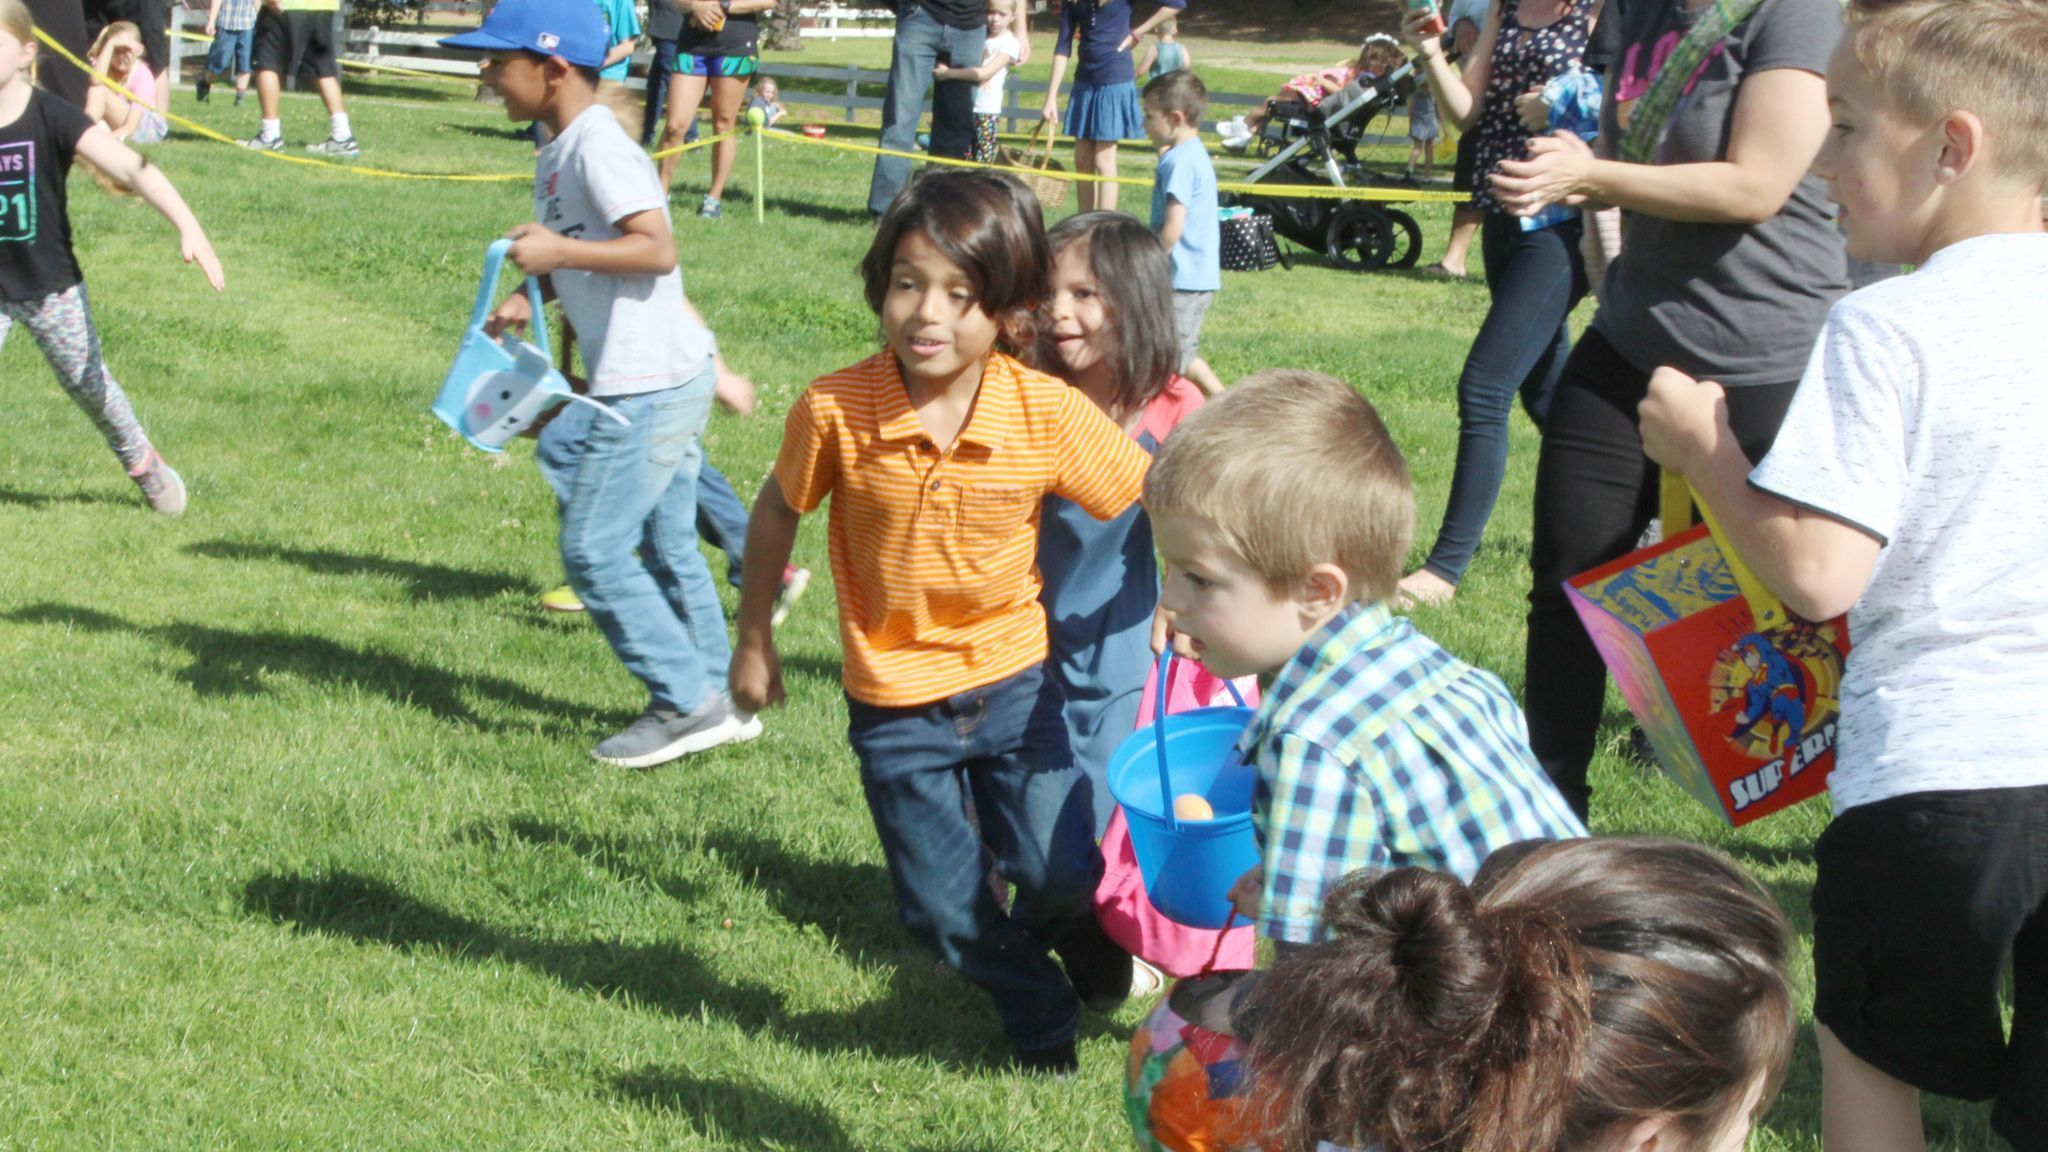 Enthusiastic youngsters rush for the remaining eggs at the end of the egg hunt for 5- to 7-year-olds.